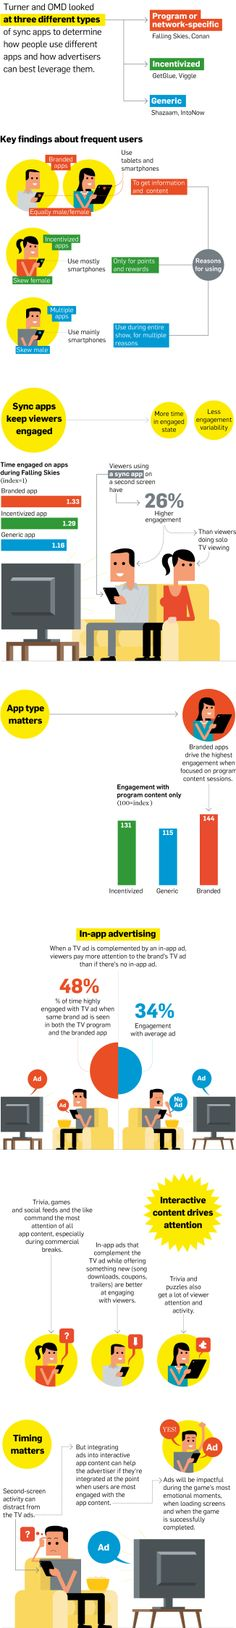 Types of Second-Screen Apps That Keep Users Engaged - studies by Time Warner Medialab Small Business Marketing, Social Media Marketing, Social Tv, Applique, Journey Mapping, Time Warner, Tv Ads, Applications, Always Learning